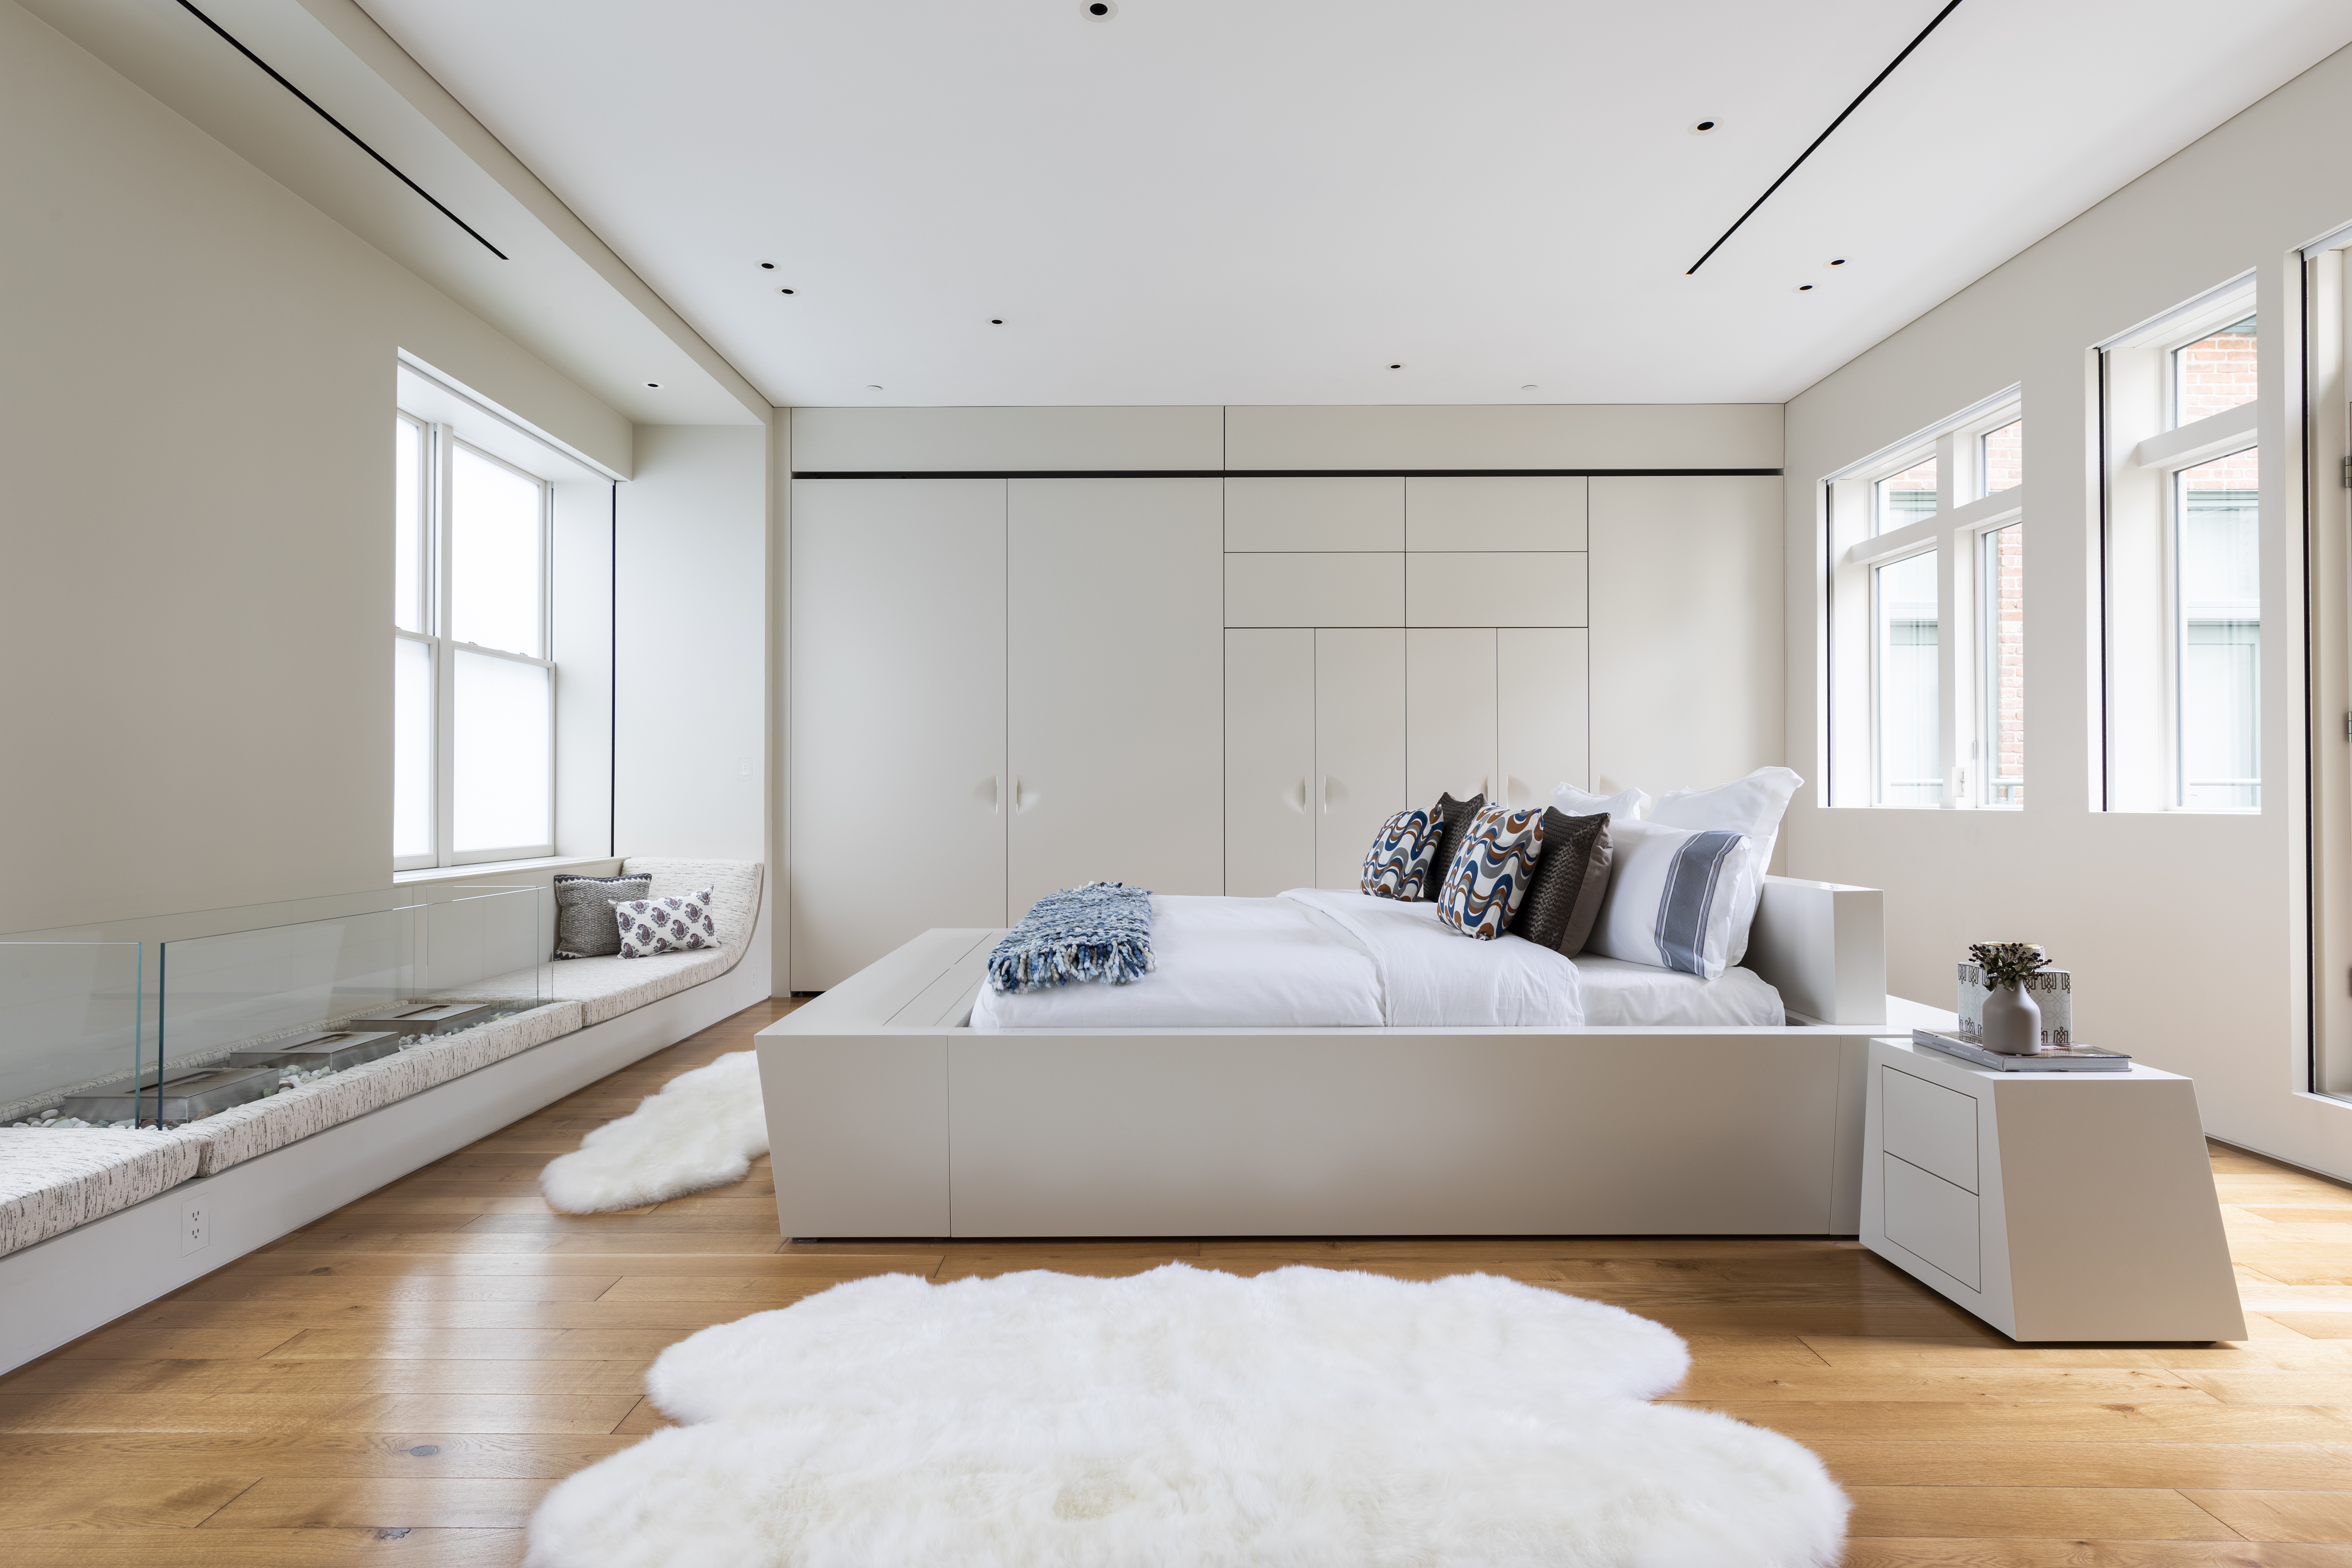 Sheepskin, shag and hide rugs can serve as an alternative to traditional area rugs.